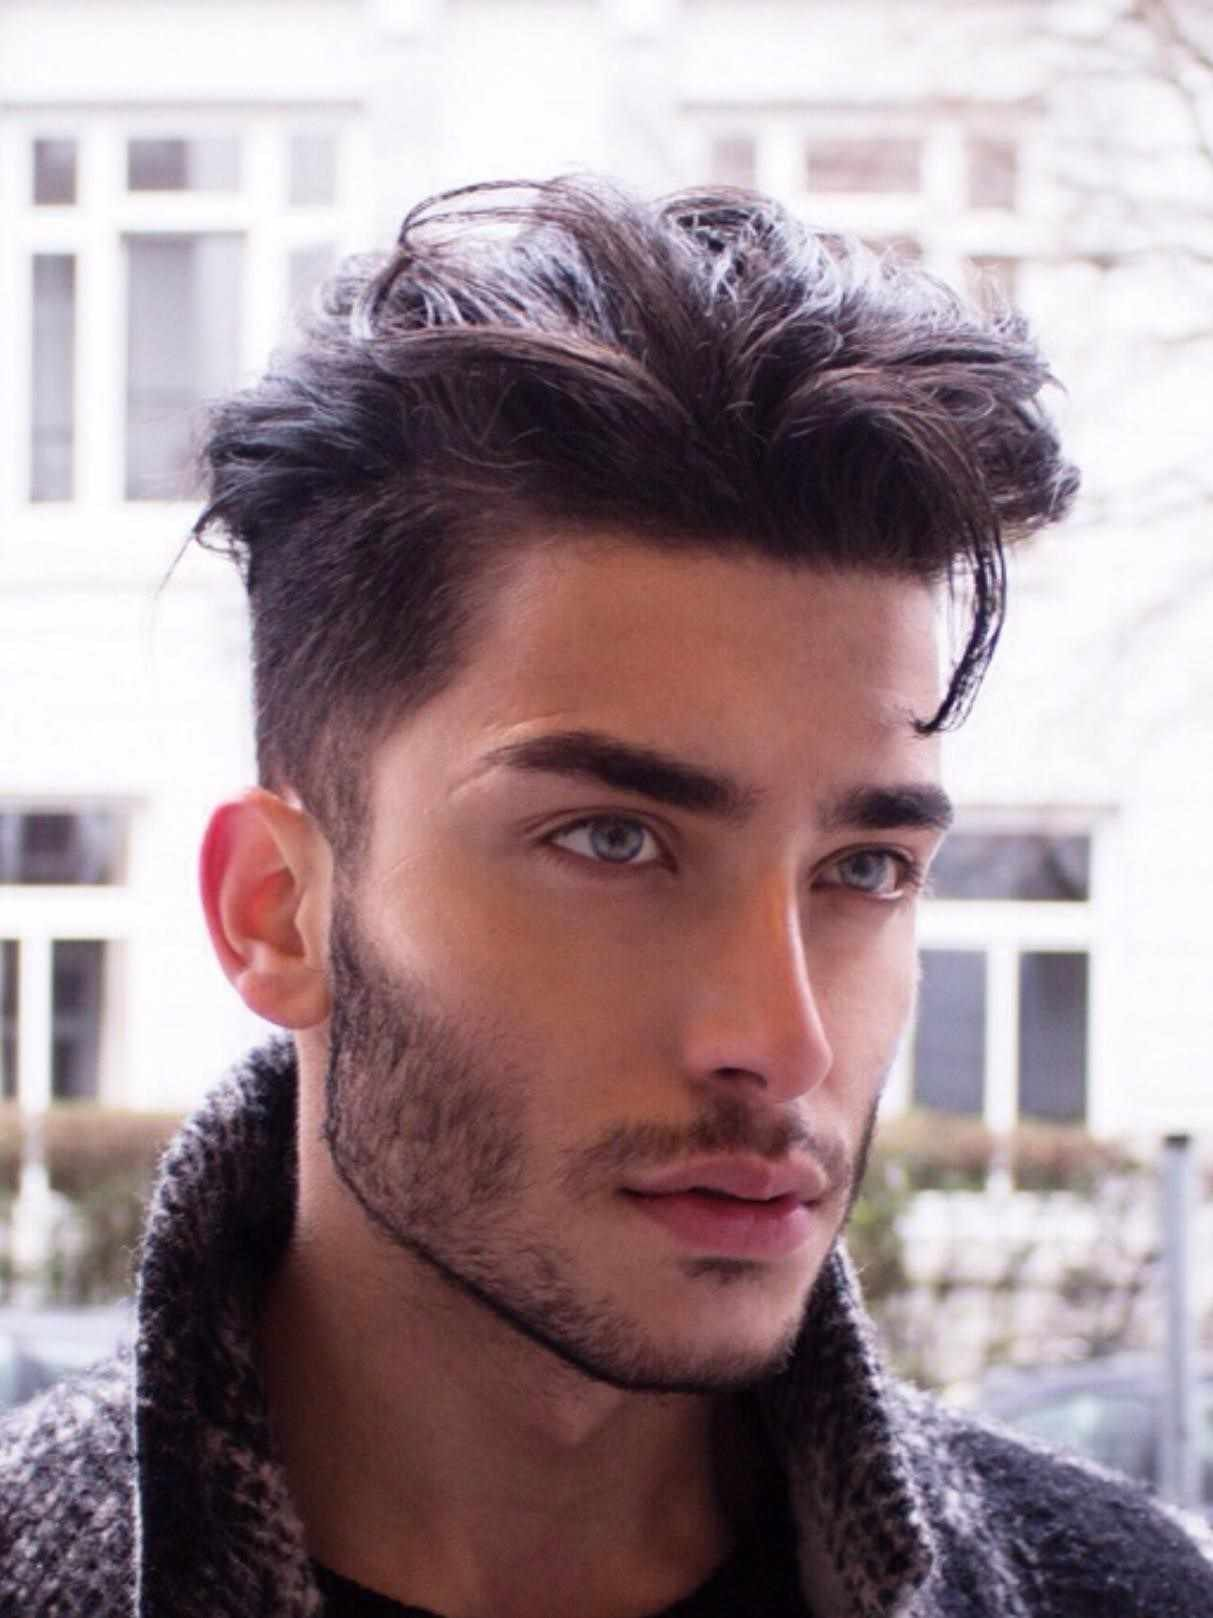 Pixie Haircut Cool Hairstyles For Men Haircuts For Men Mens Hairstyles 2018